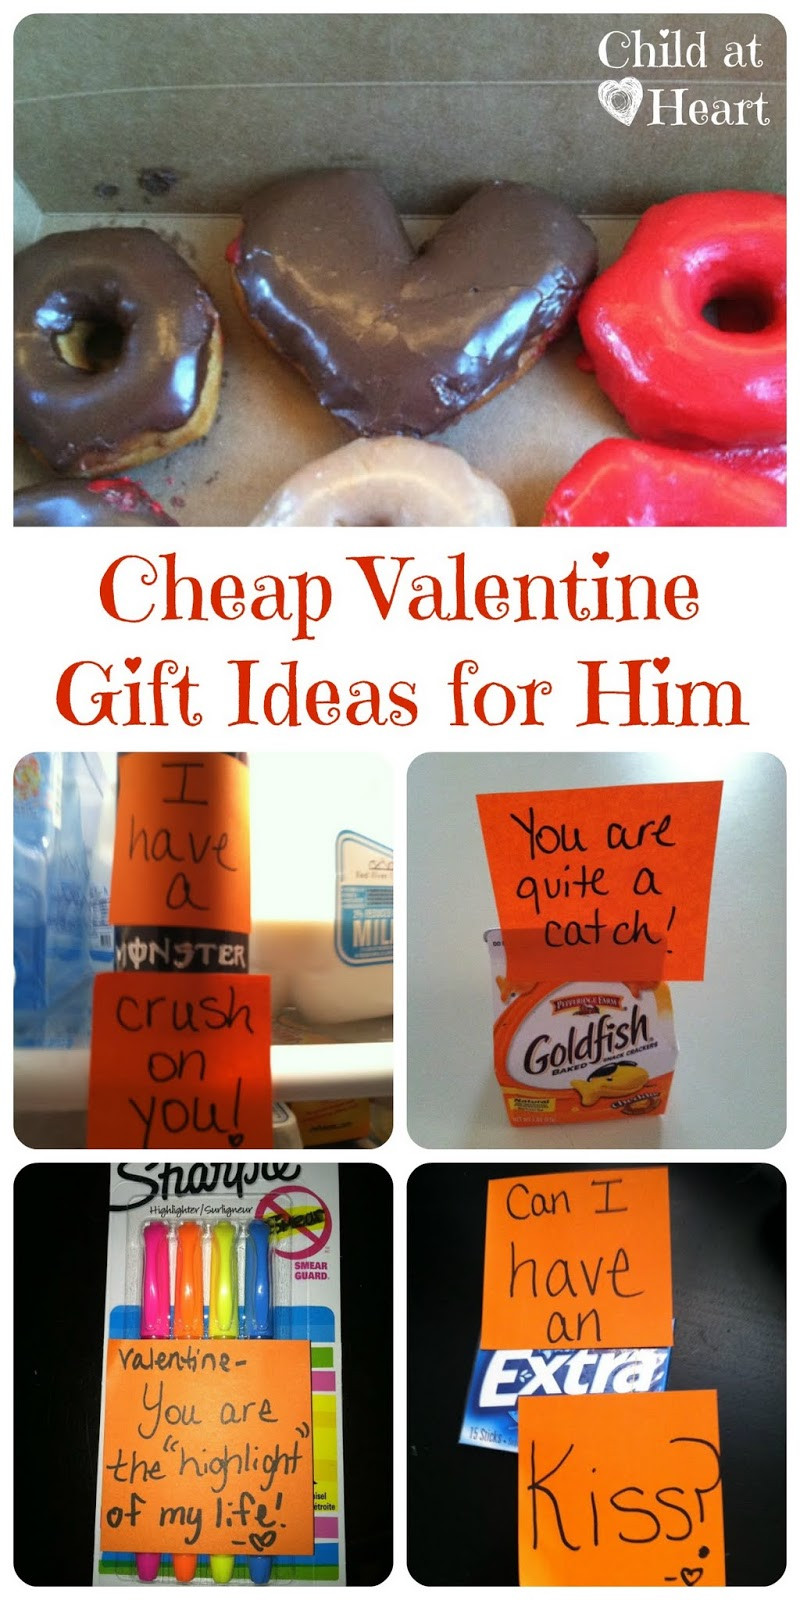 Valentines Day Gift Ideas  Cheap Valentine Gift Ideas for Him Child at Heart Blog